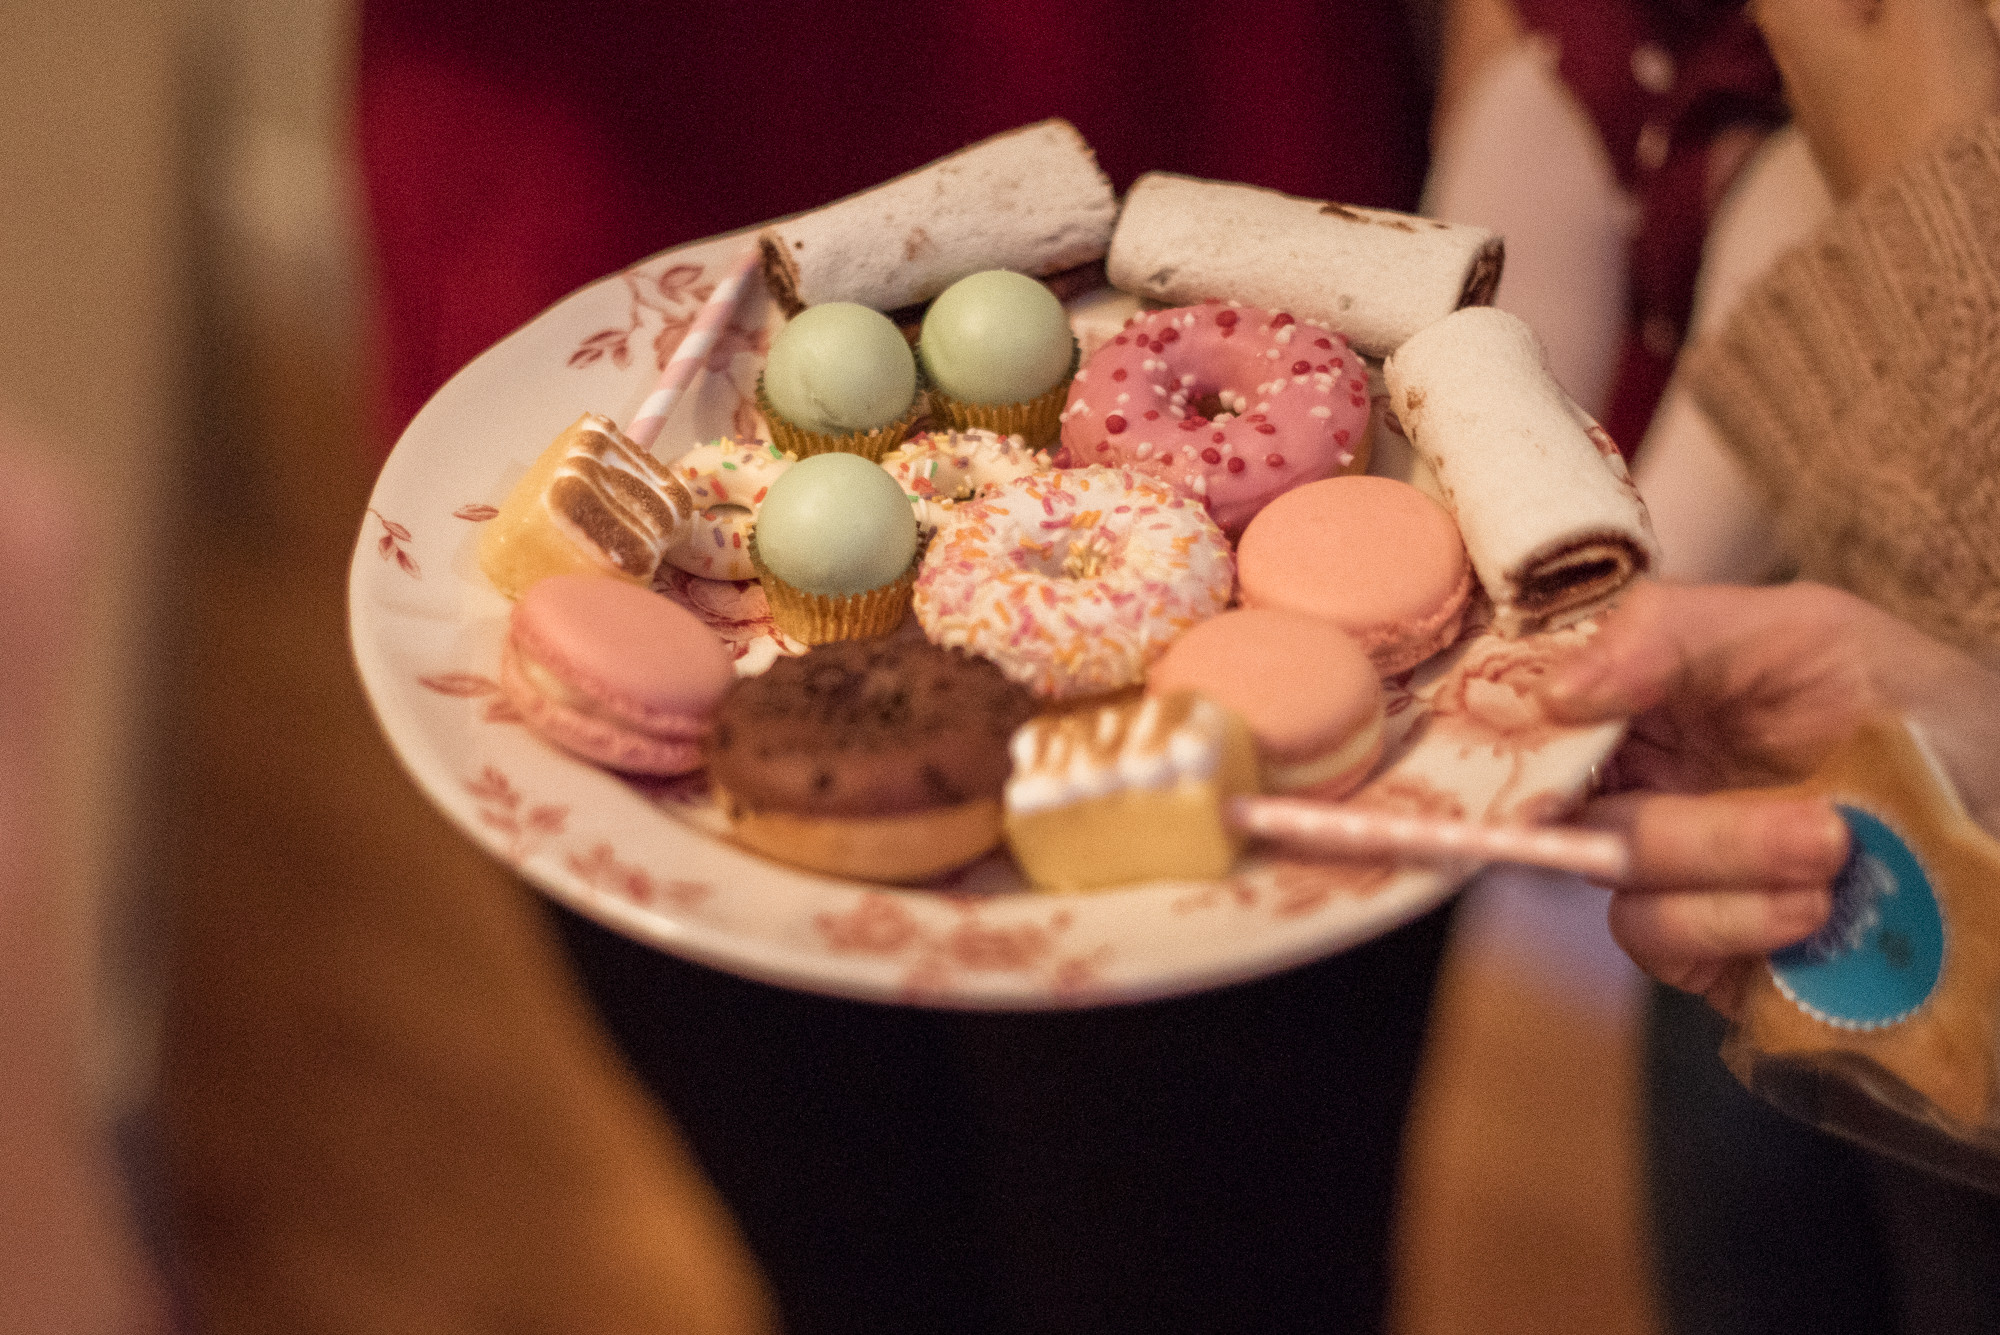 donuts, 21 marzo catering, miss cavallier, fénix visual,